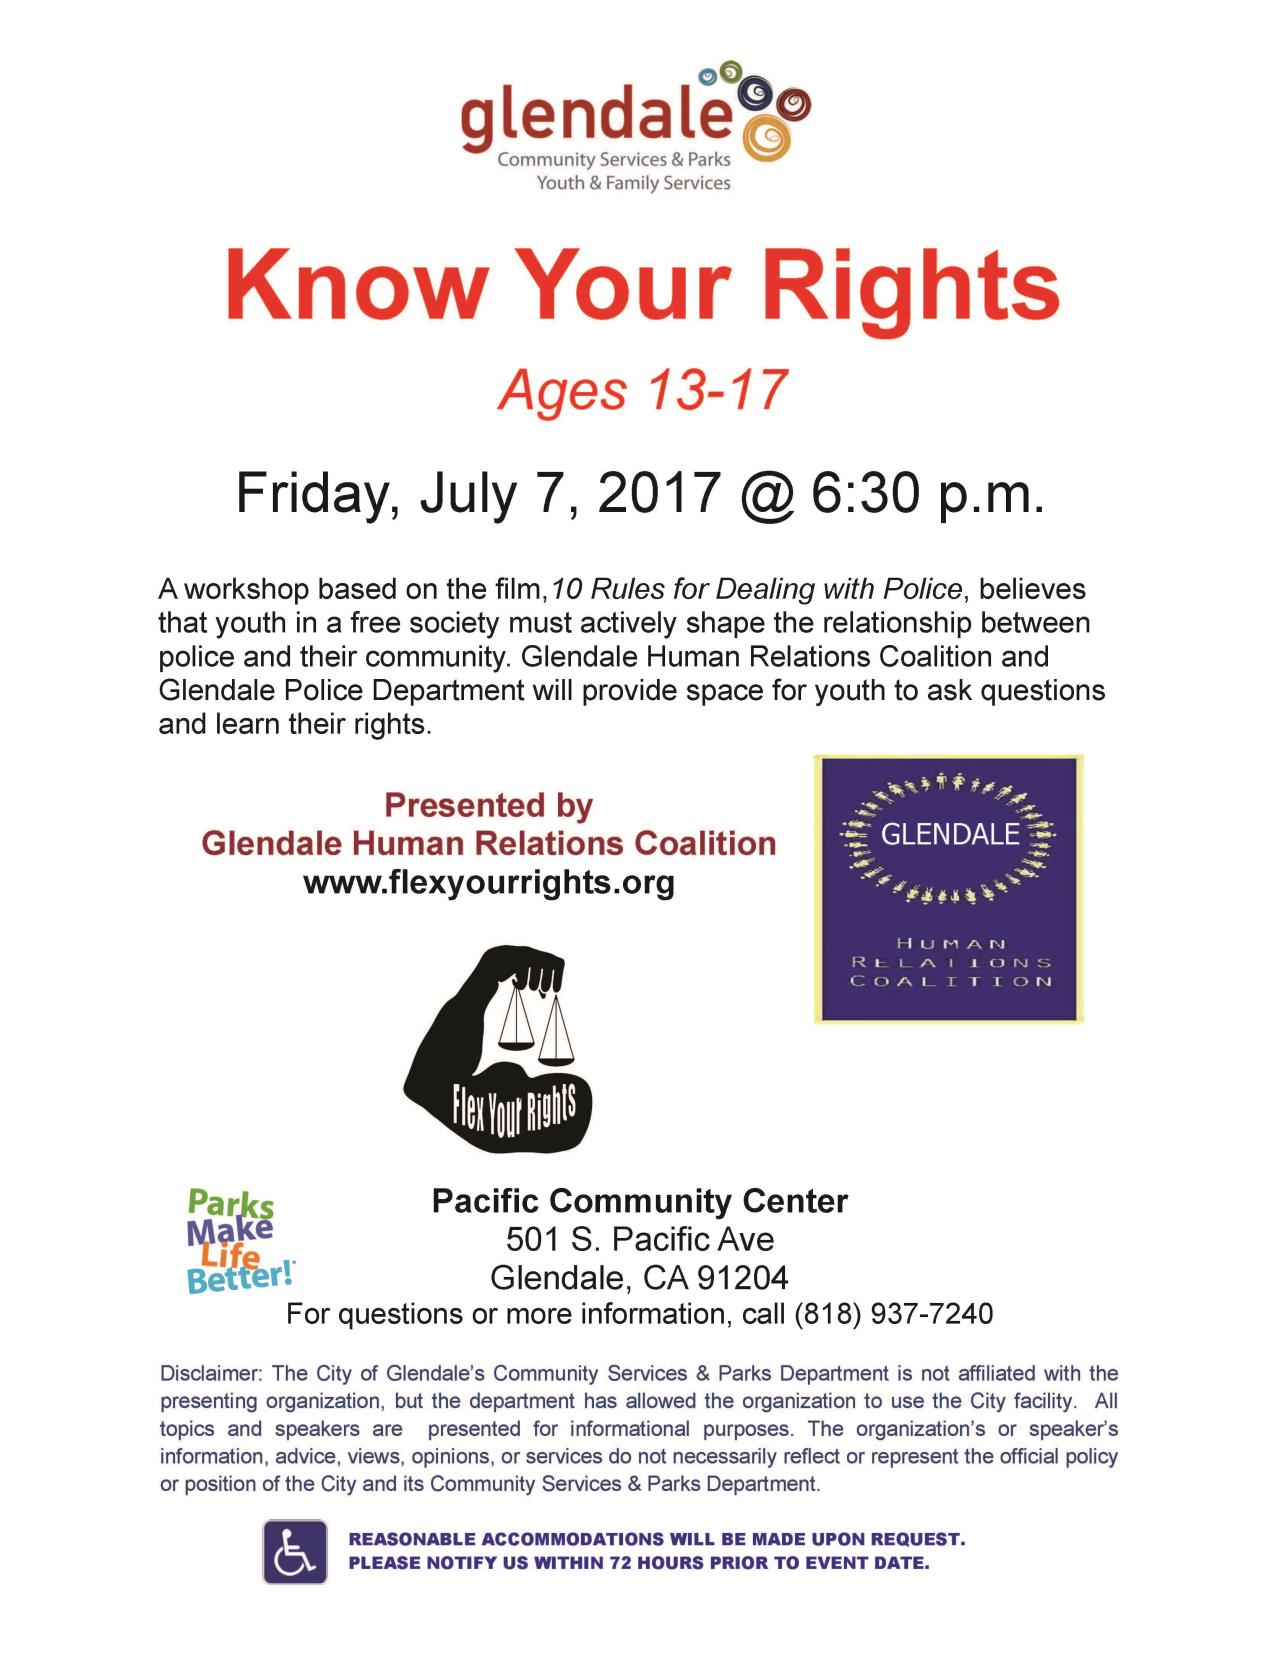 Know Your Rights 2017